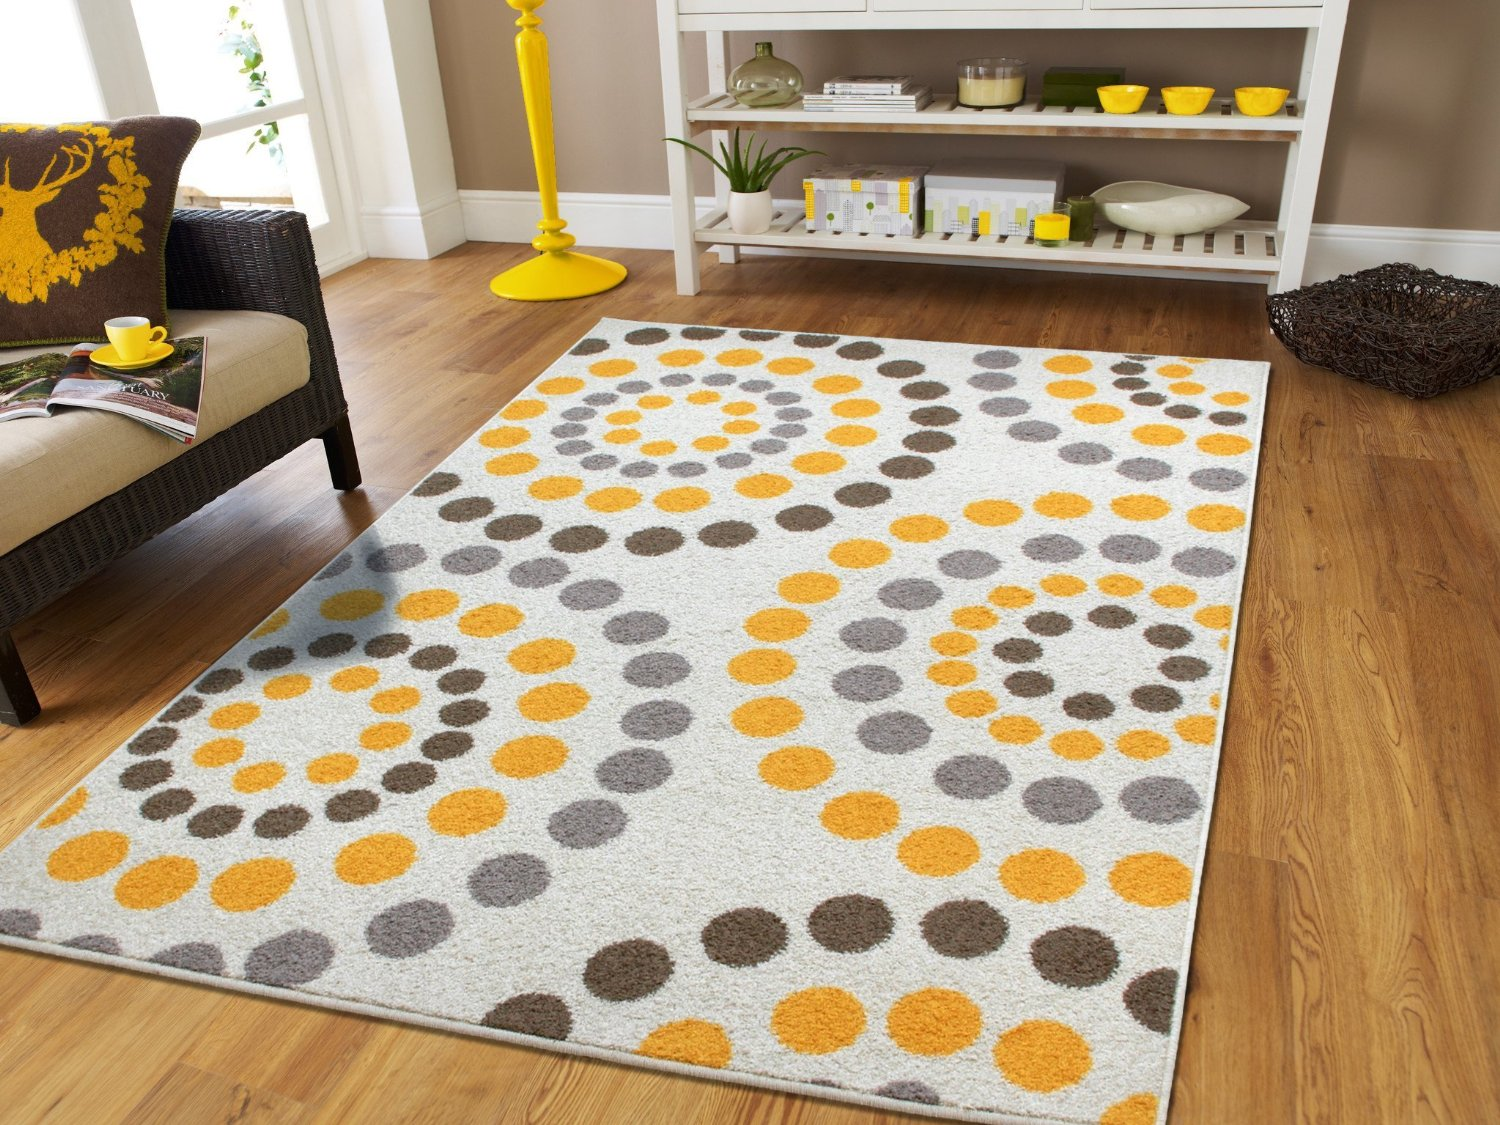 Cheap Lowes Rugs Clearance Find Lowes Rugs Clearance Deals On Line